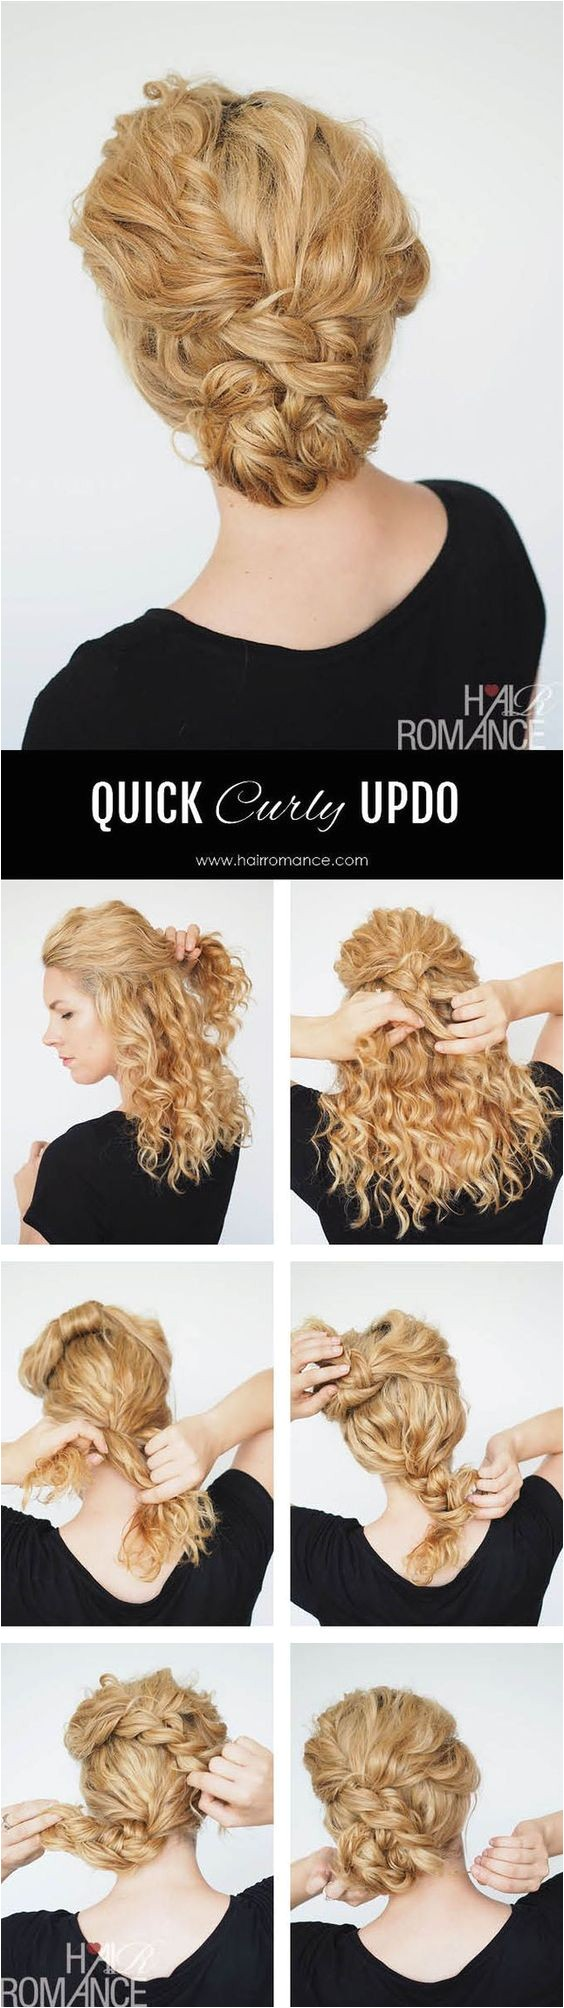 quick updo for natural curly hair